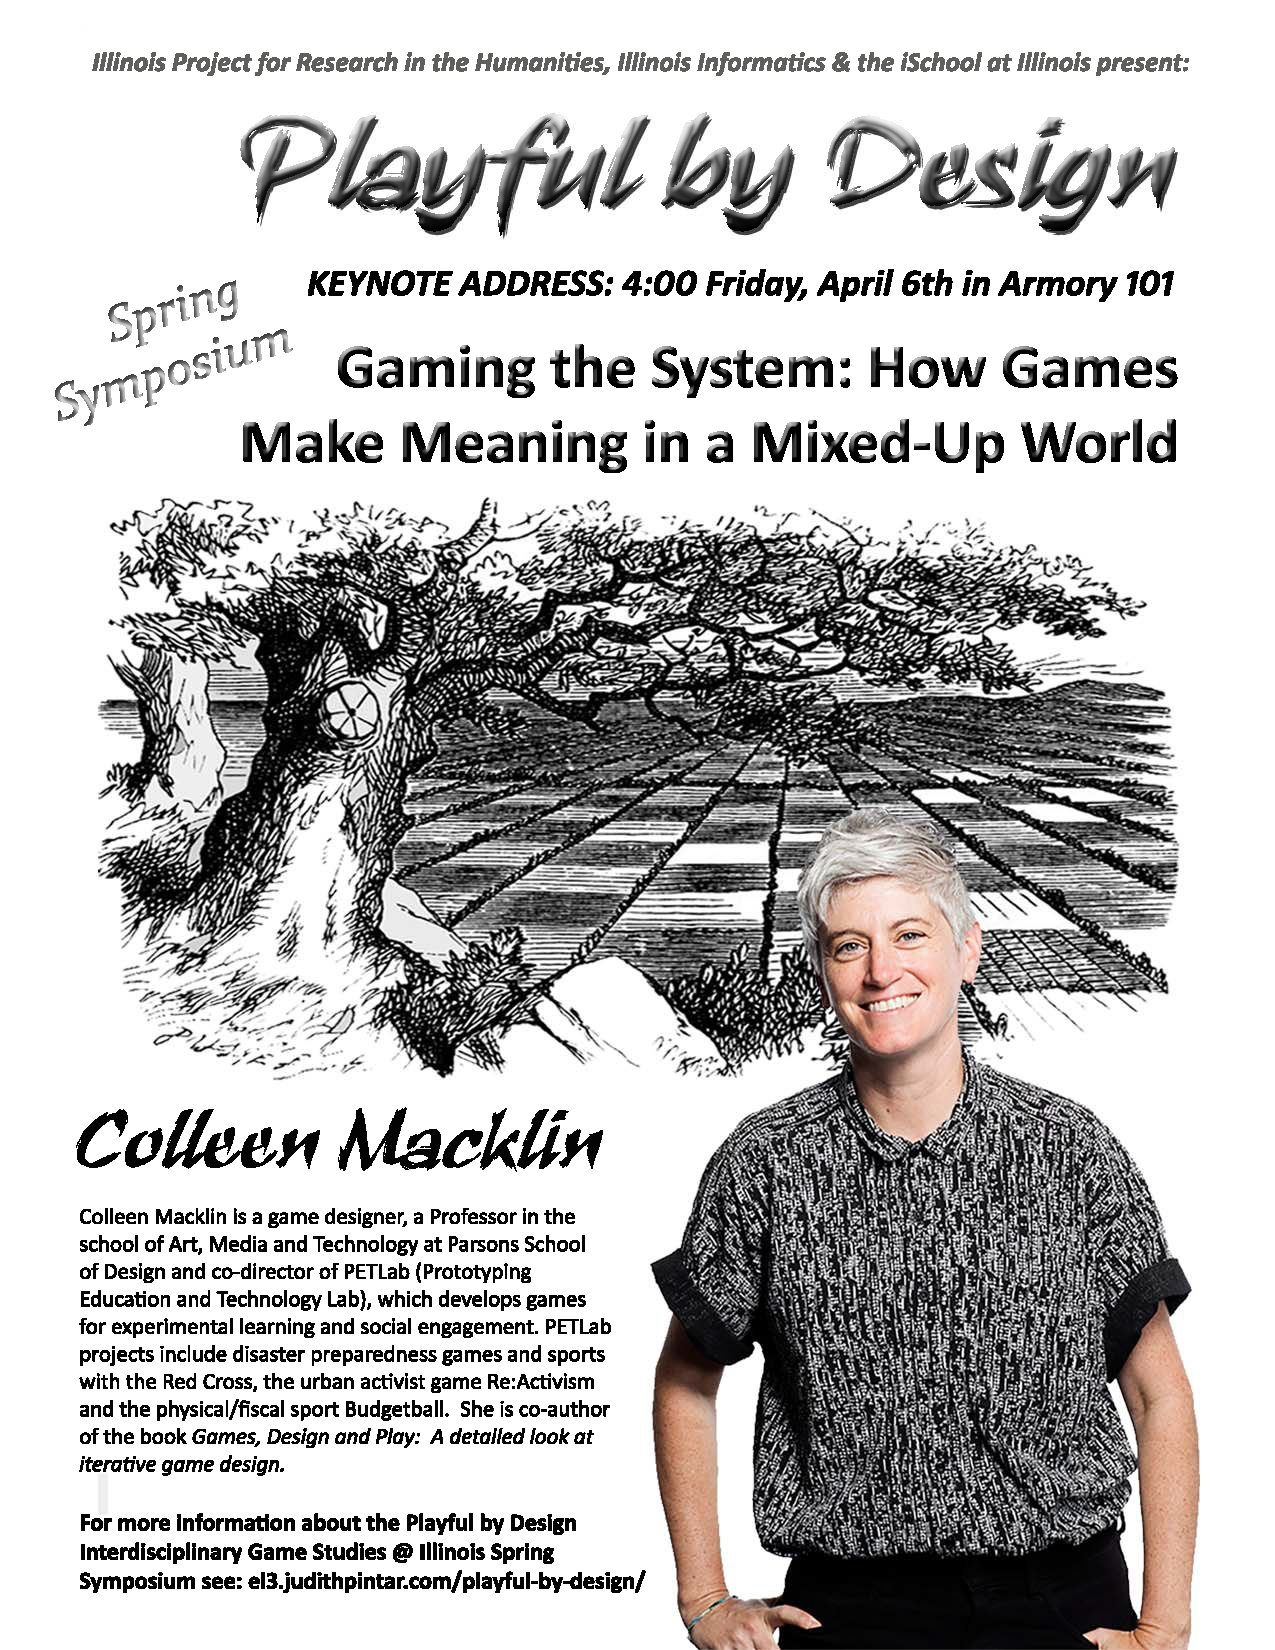 Poster for the keynote speaker, Colleen Macklin